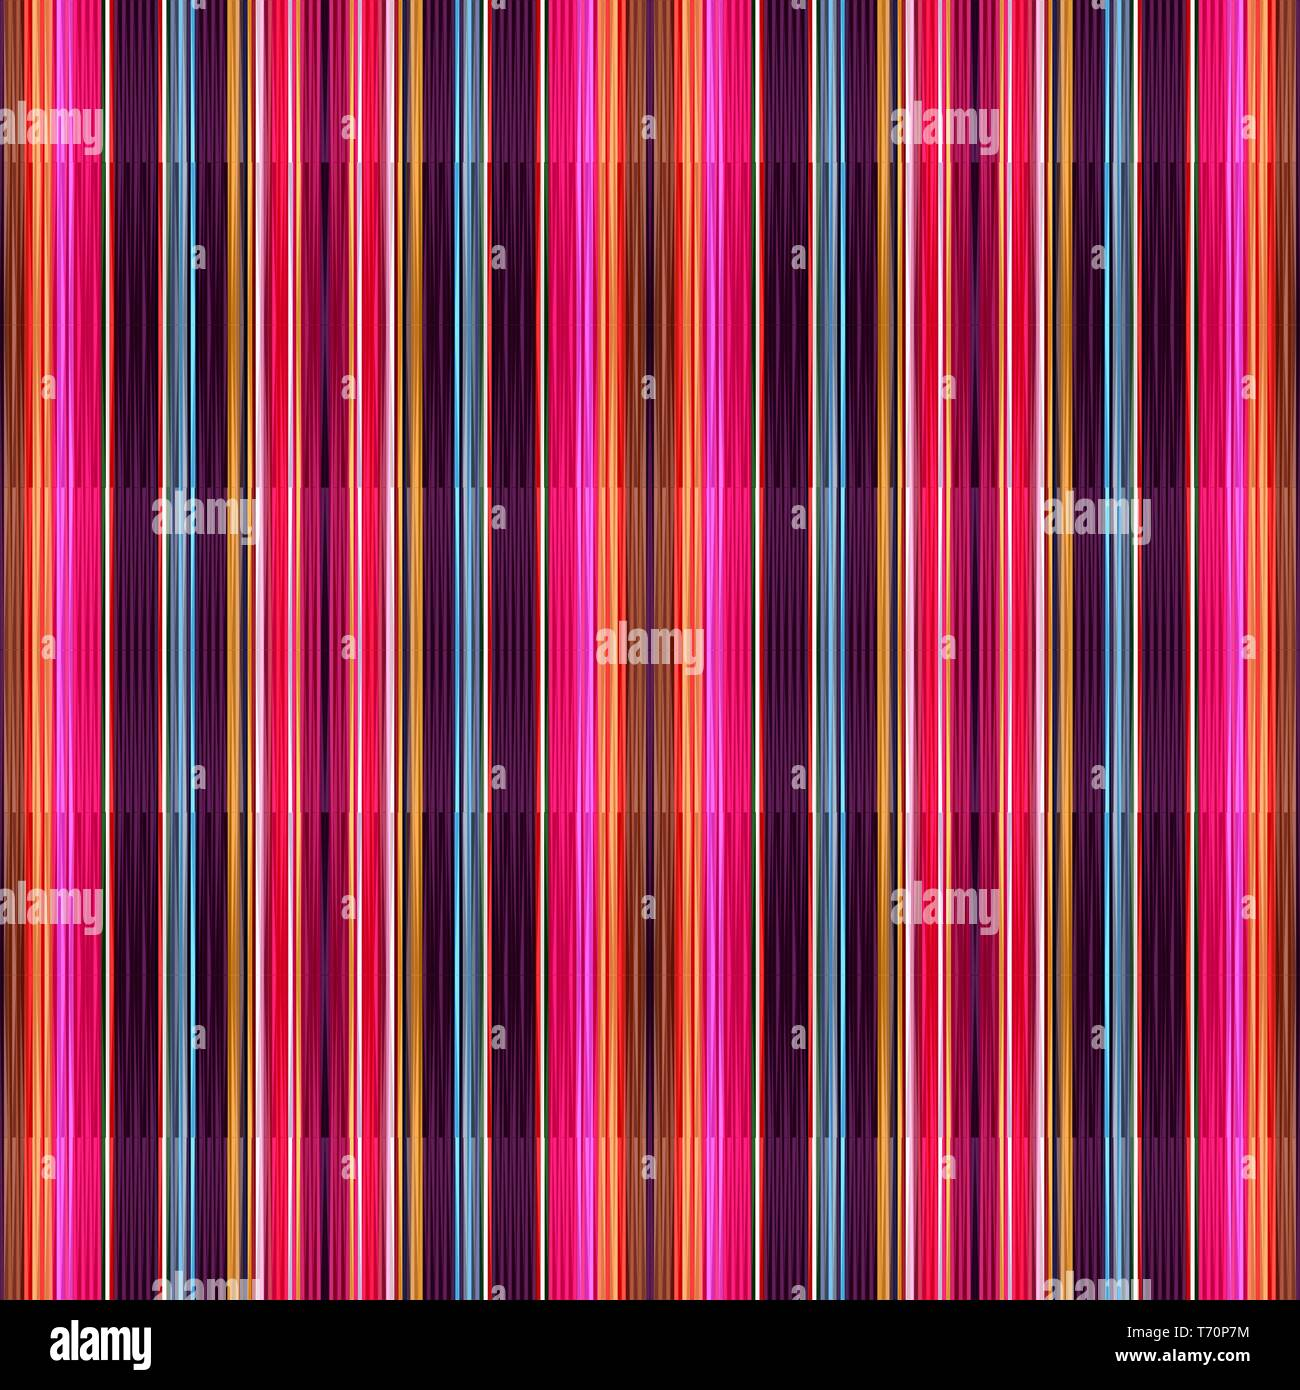 Seamless Vertical Lines Wallpaper Pattern With Crimson